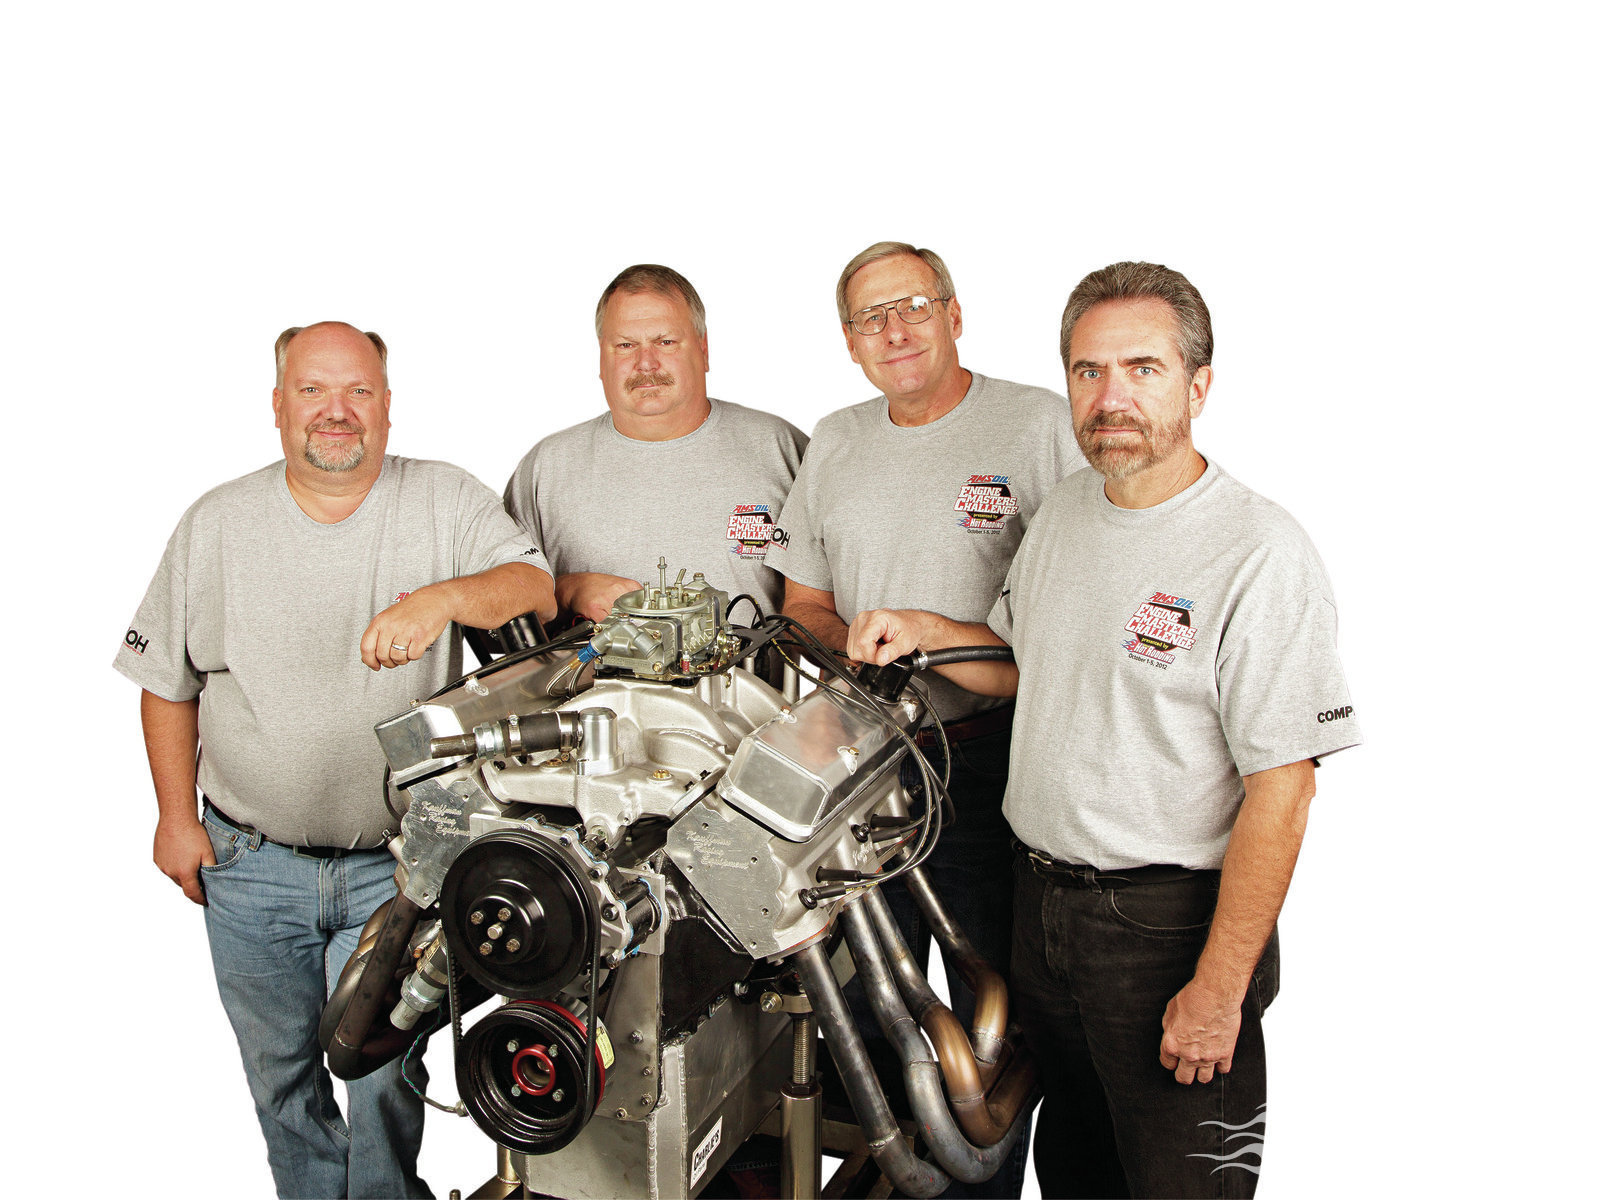 Pontiac performance is what it is all about for these individuals. Pictured from left to right are John Albert, Bruno Jacobs, Ray Clayton, and Mike Semchee.